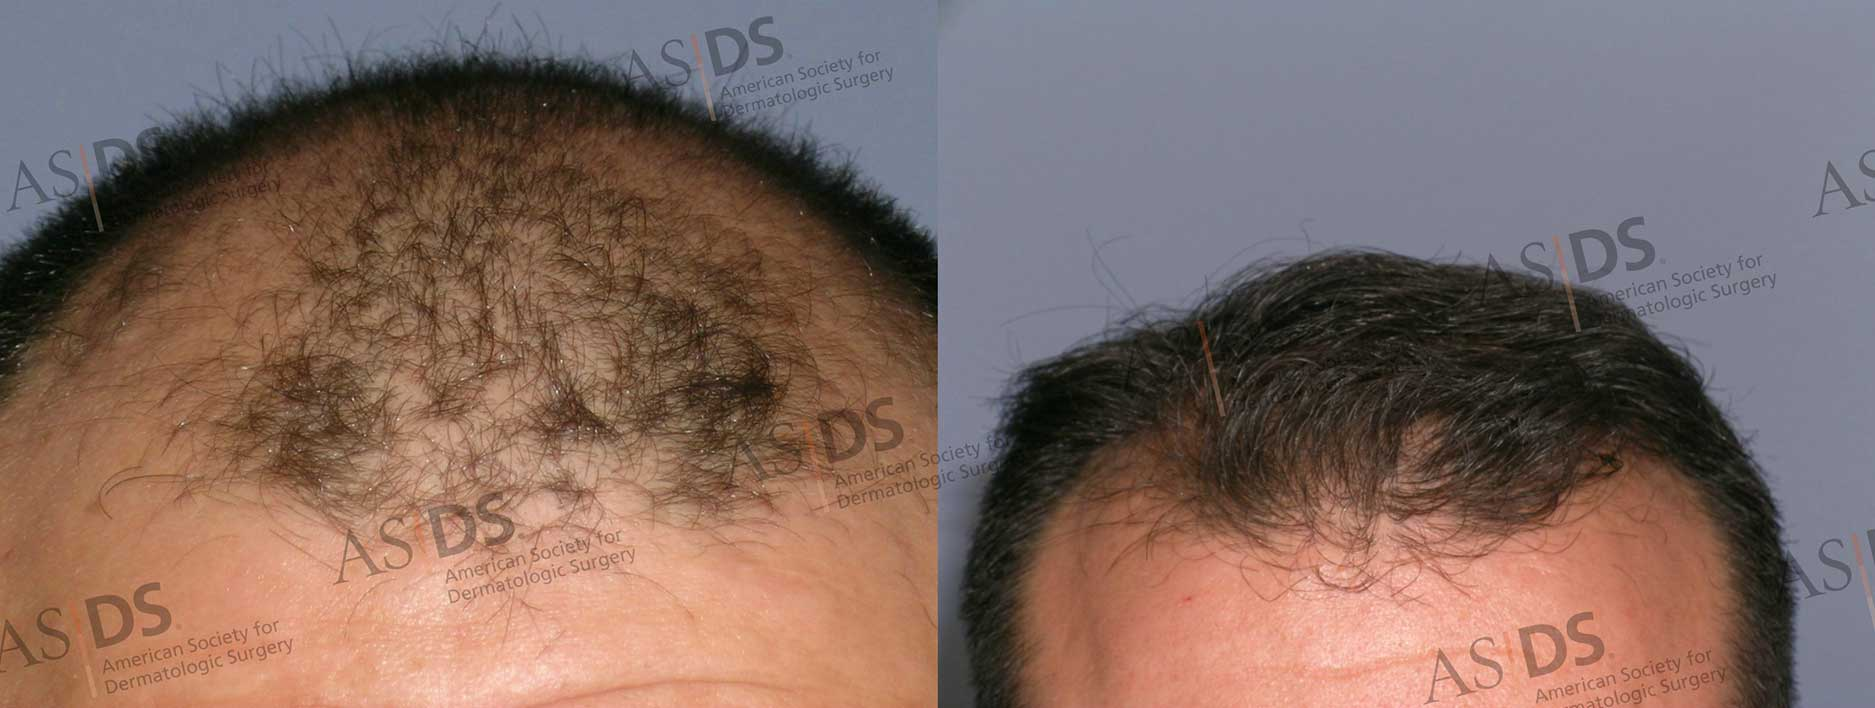 Before (left) and after (right) - front of scalp after hair transplant.